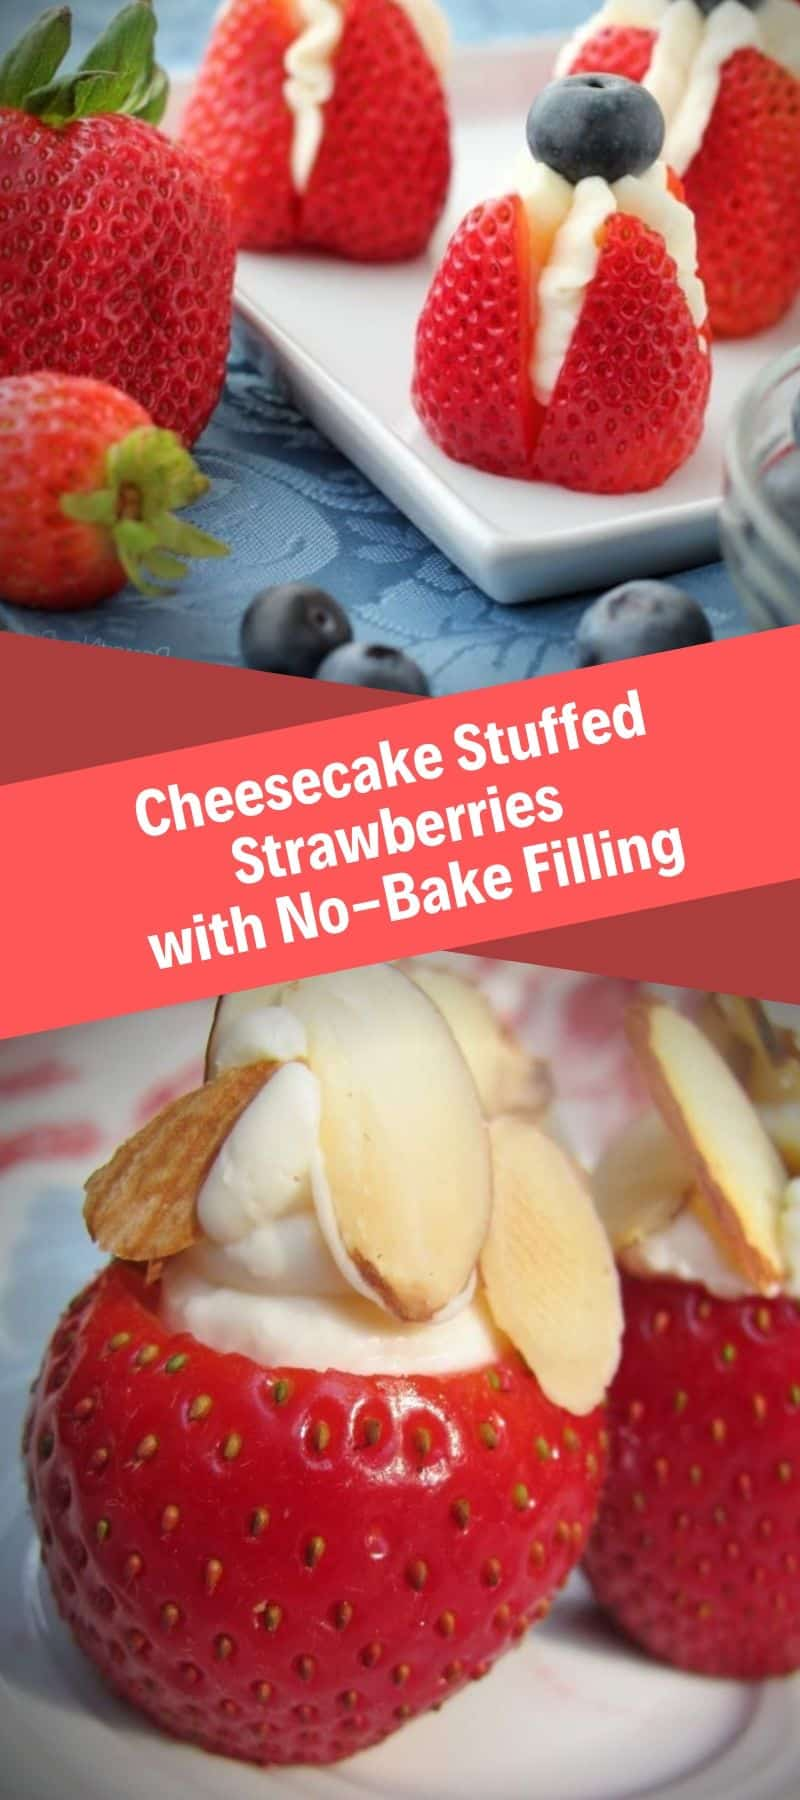 Cheesecake Stuffed Strawberries with No-Bake Filling 2